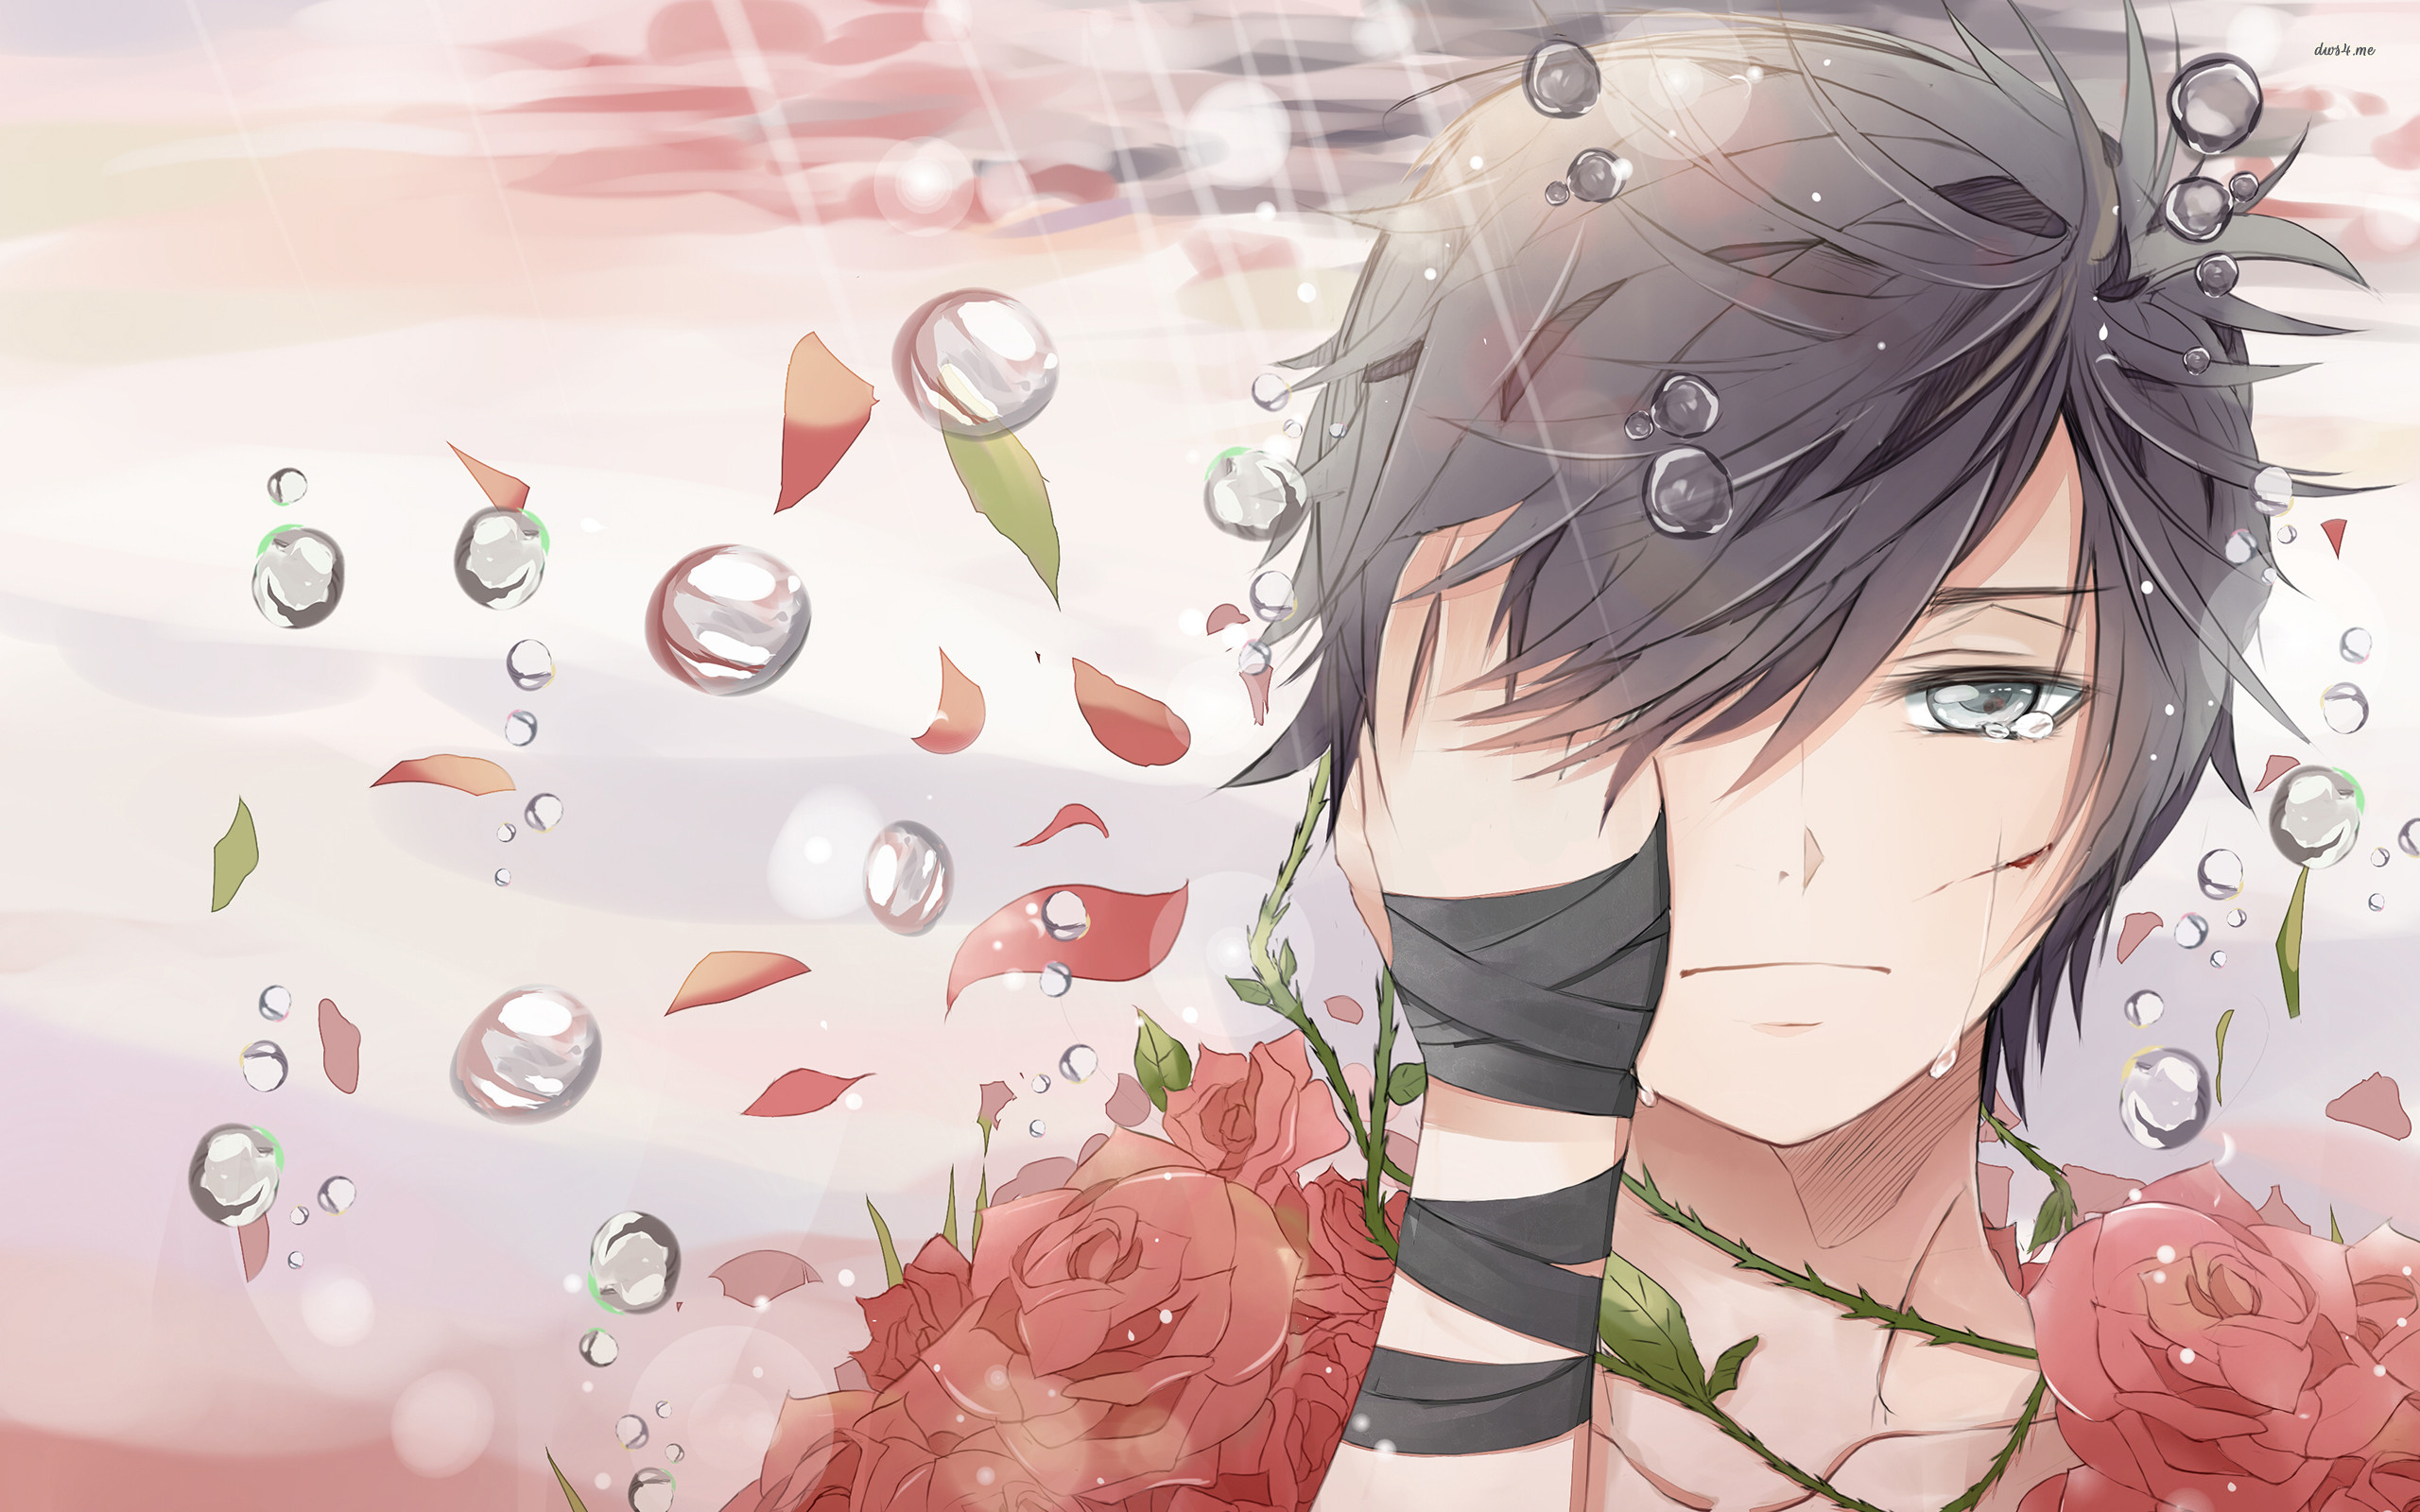 Res: 2560x1600, ... Sad boy covered in roses wallpaper  ...